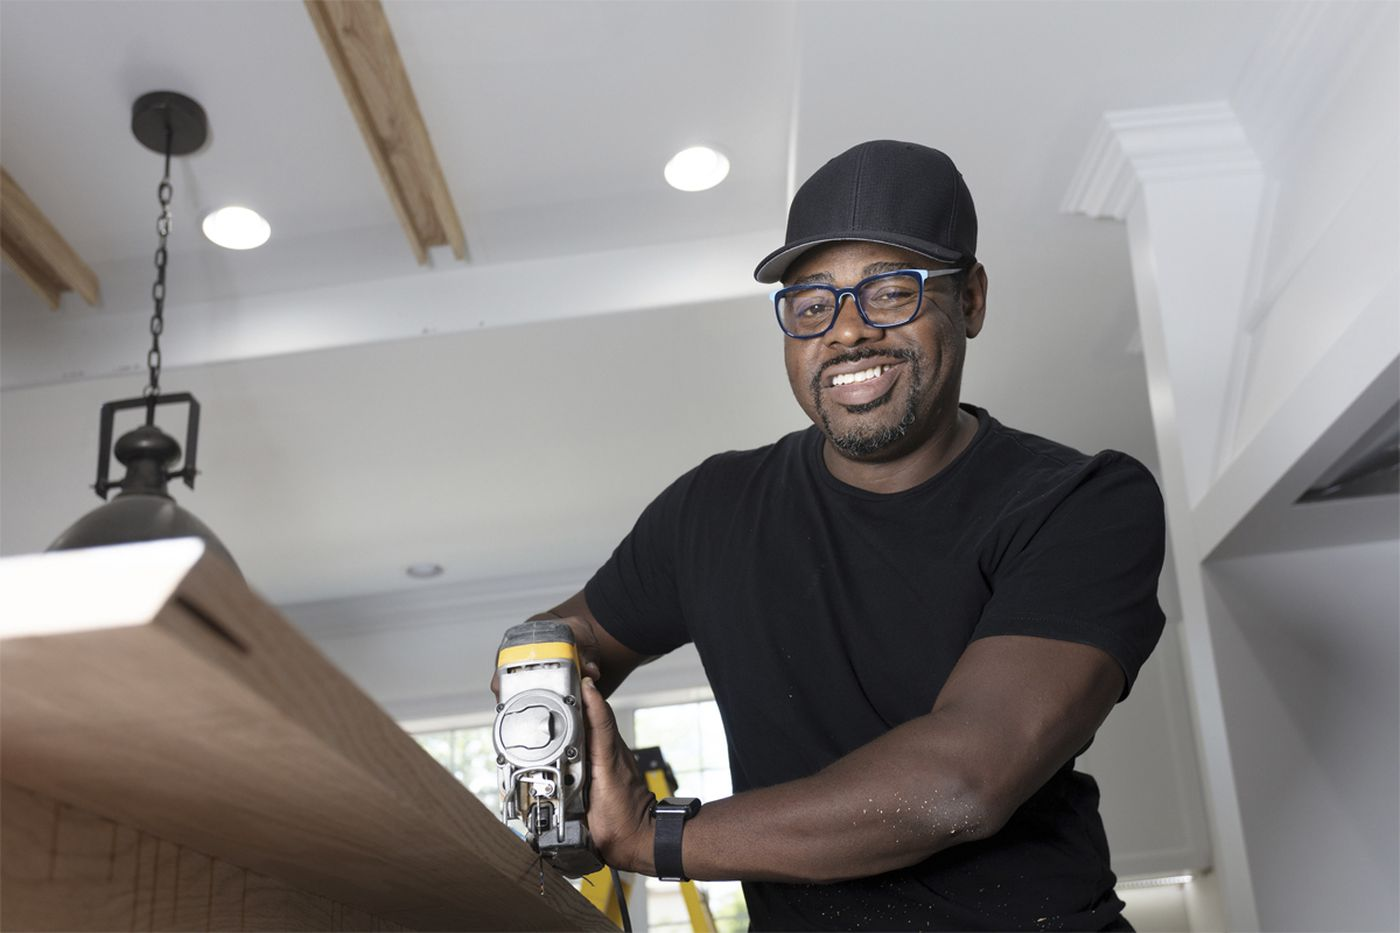 Boyz II Men's Nathan Morris on his new gig as a house-flipping TV star (and, of course, his thoughts on Gritty)